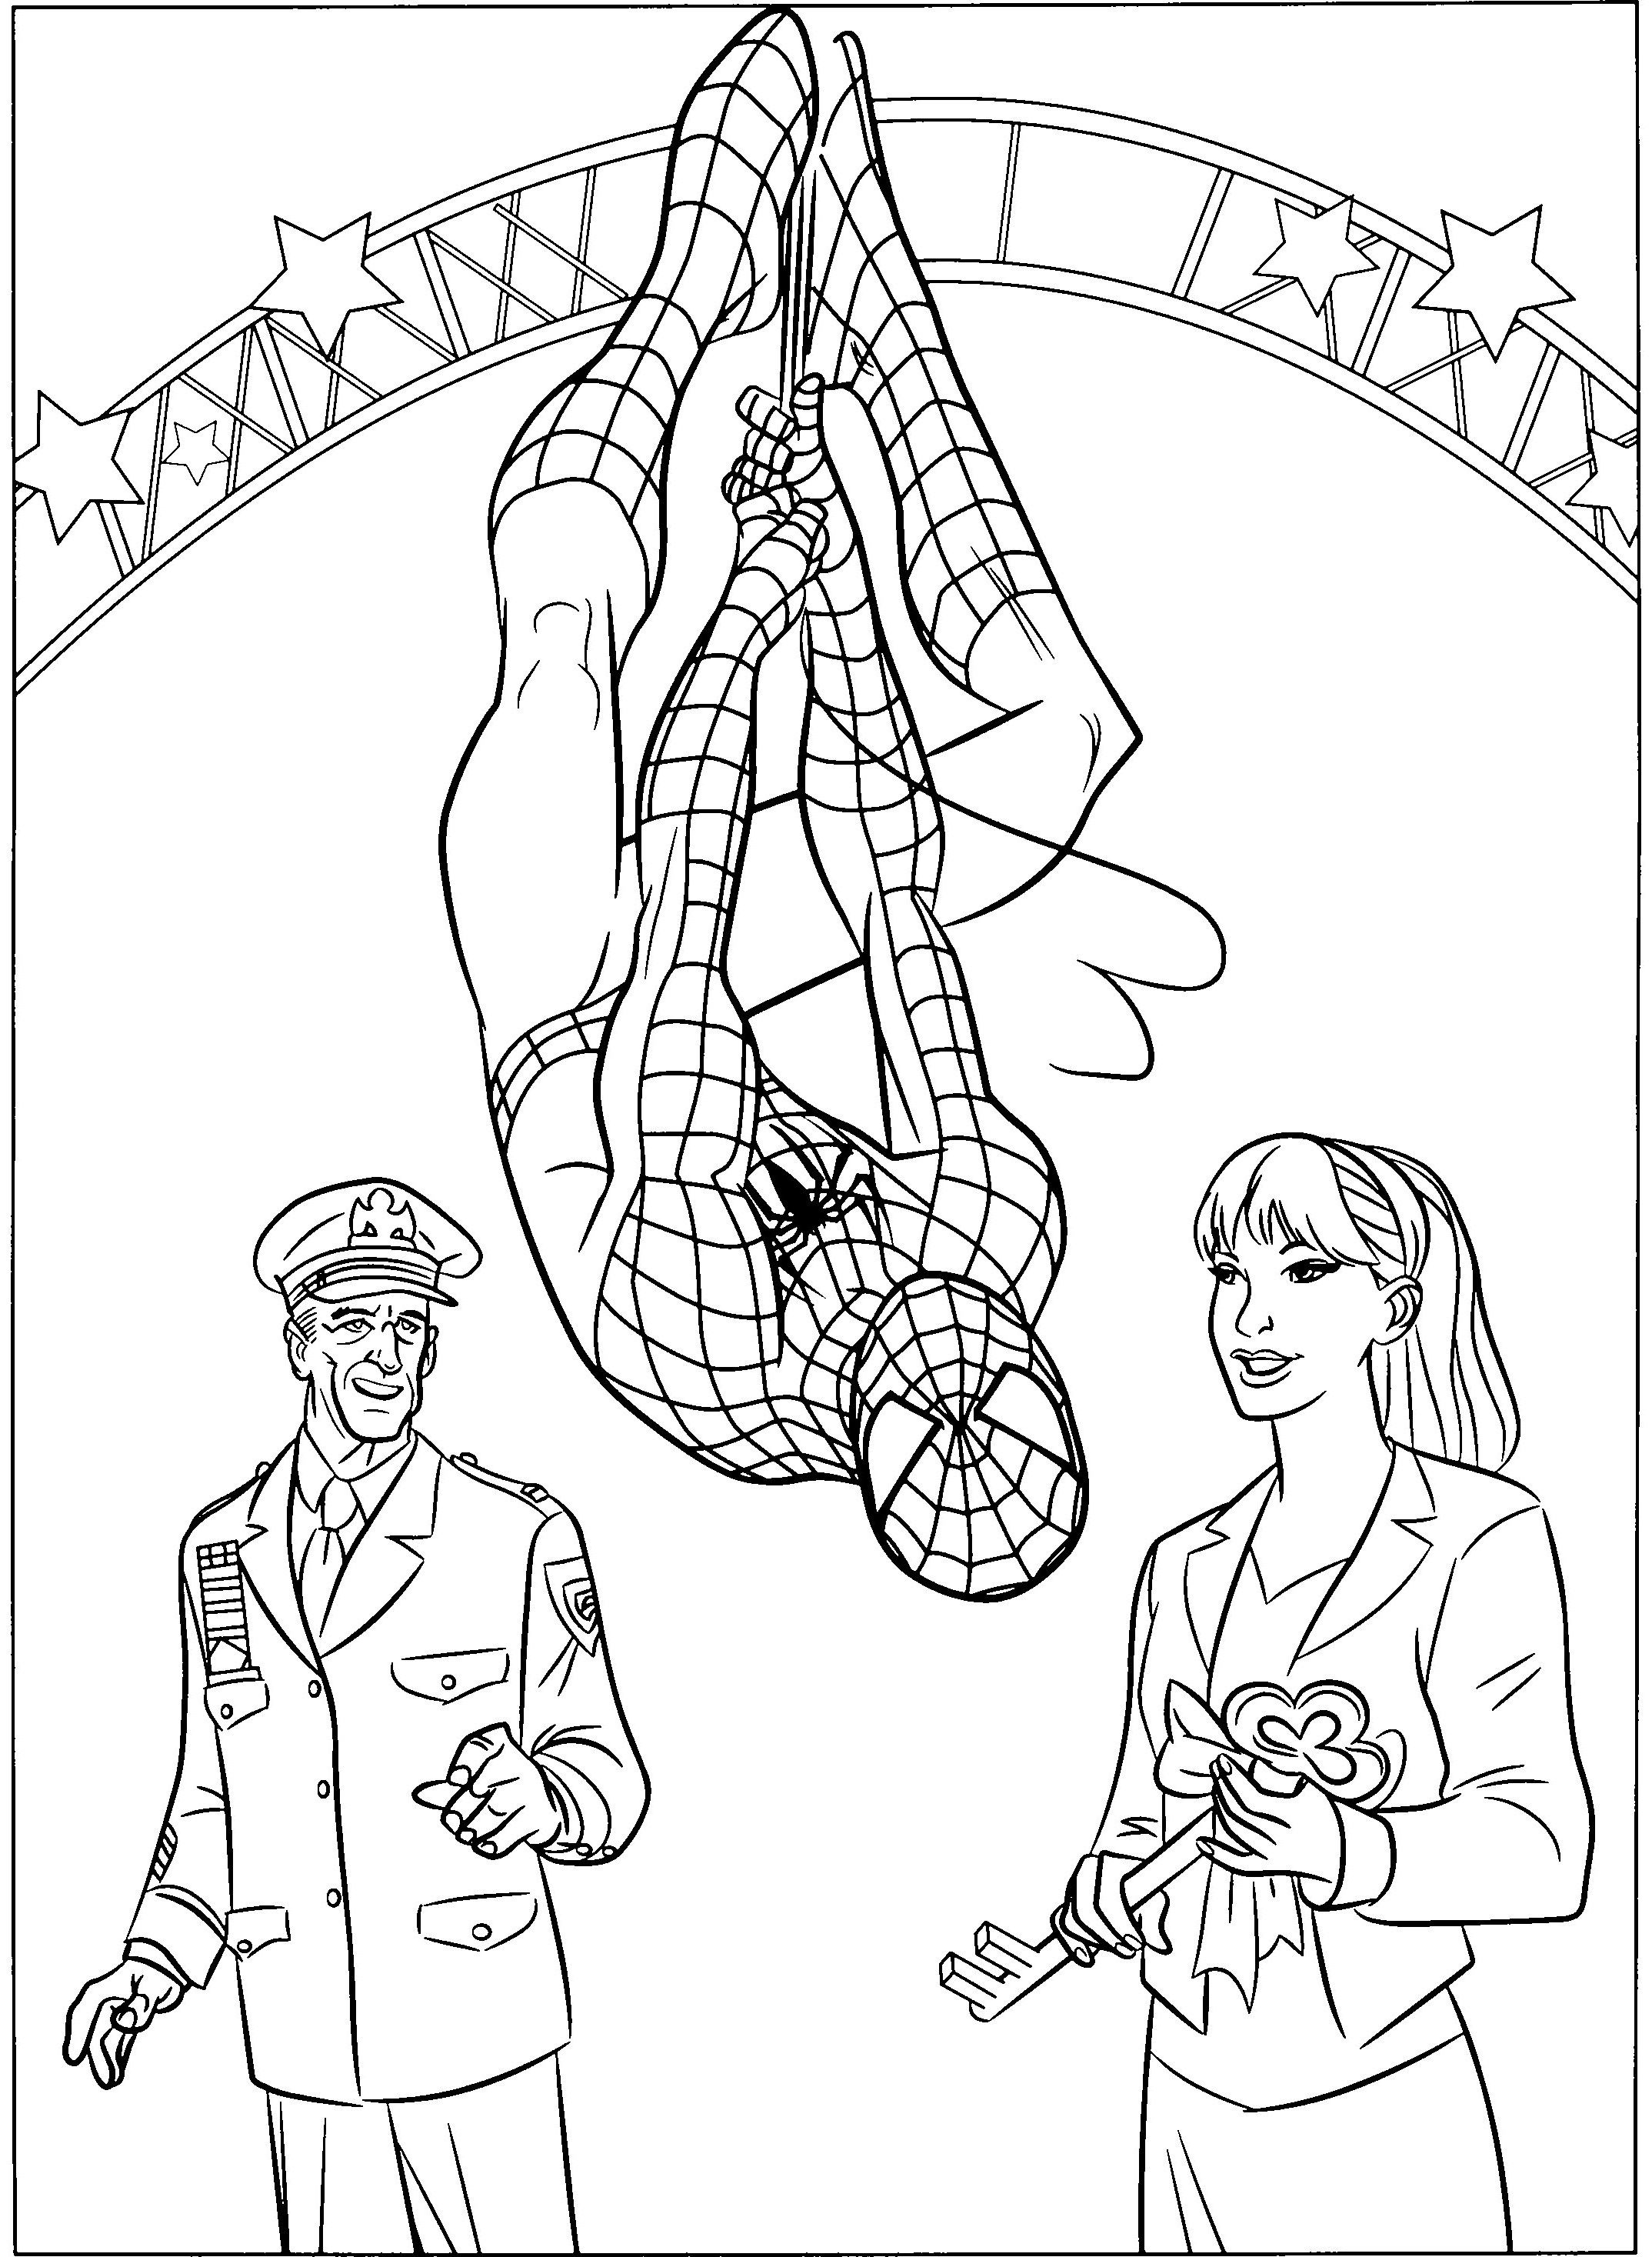 Spider Man And Friends Coloring Pages | spiderman coloring | Pinterest